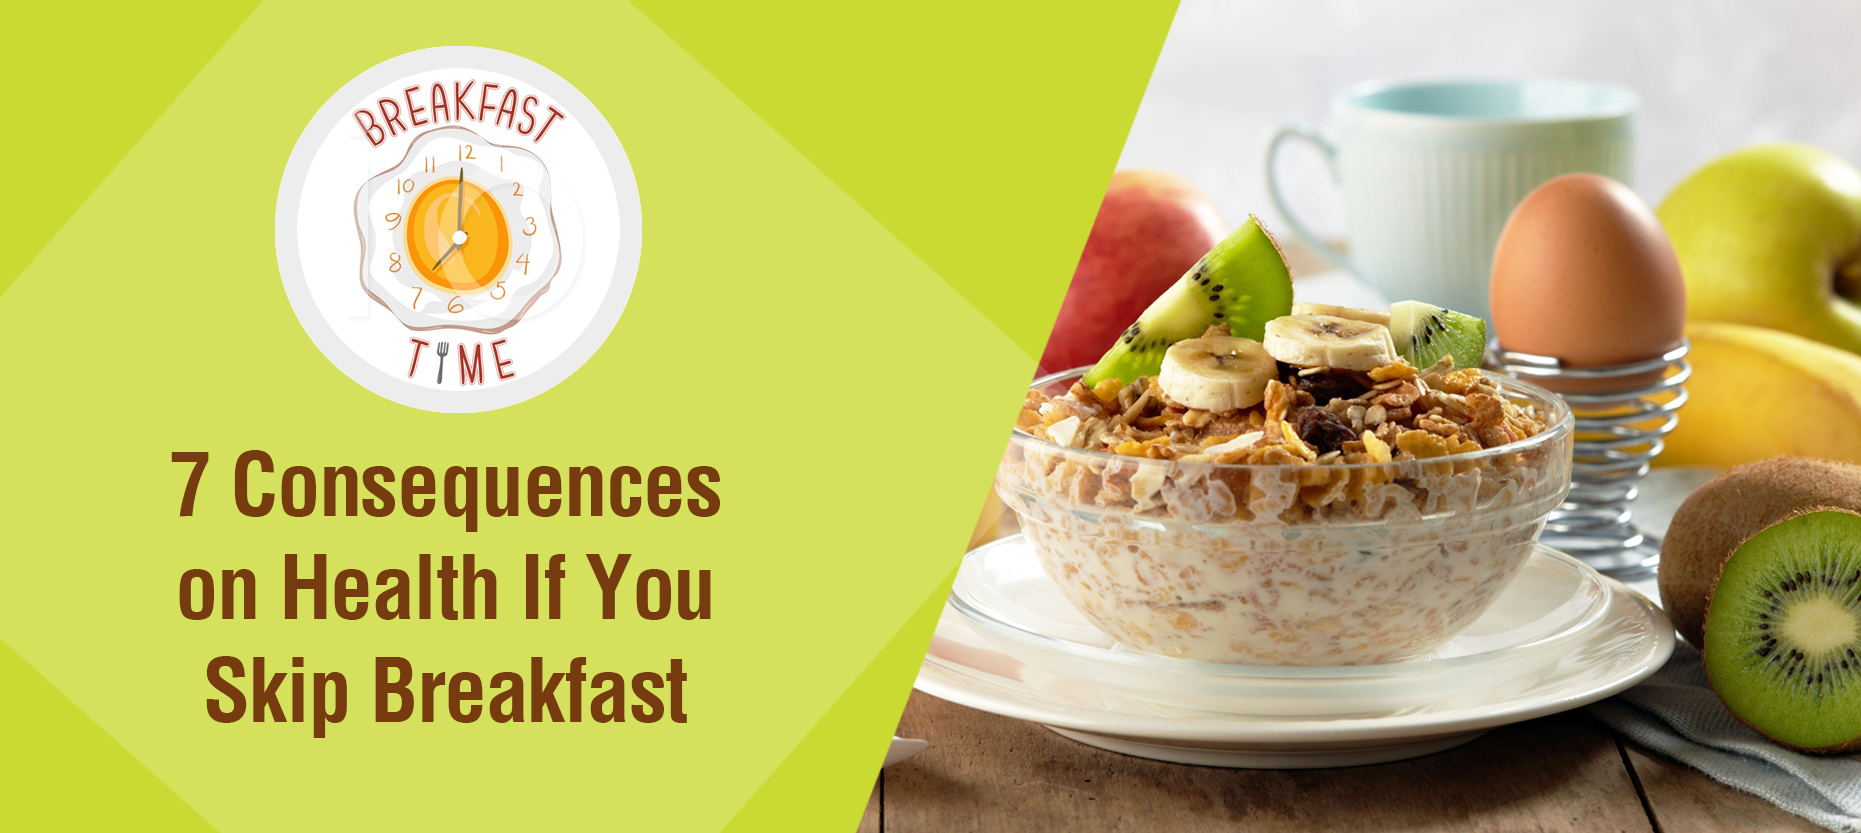 7 Consequences on Health If you Skip Breakfast